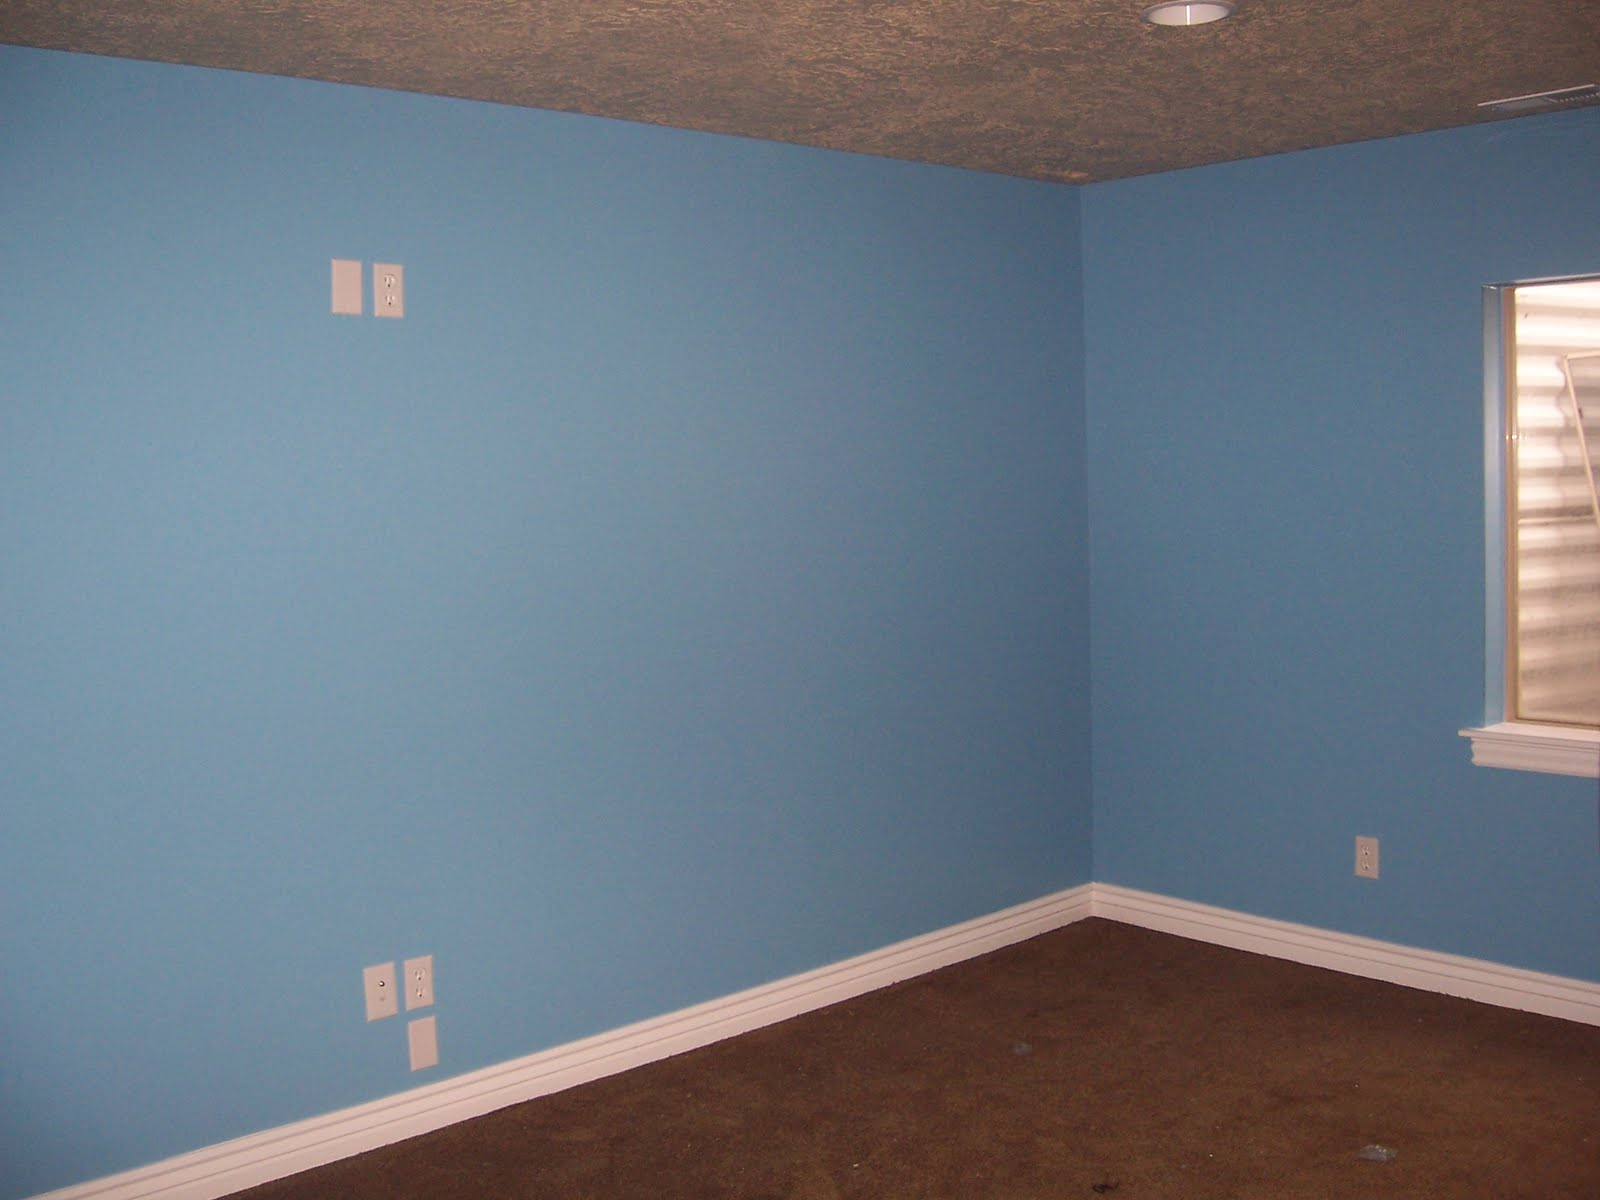 What Color Walls Go Good With Blue Carpet Carpet Vidalondon: what color goes good with blue